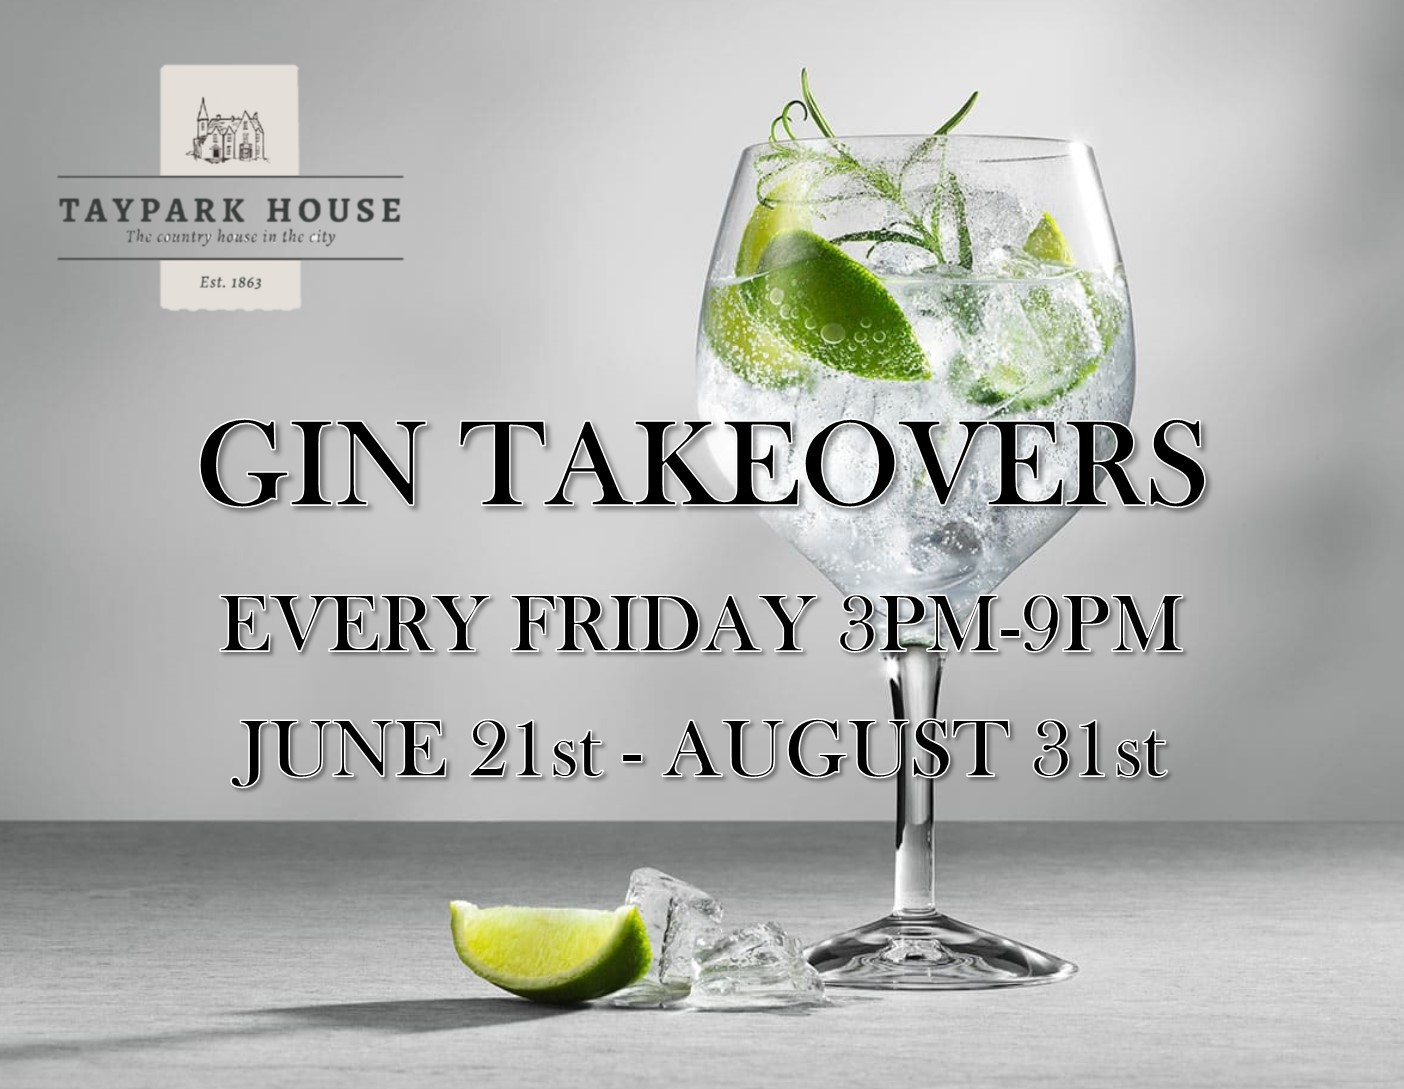 This summer we will be handing the keys of our outdoor Gin Bar over to some of our favourite Gin Companies. Each Friday the gin bar will be open from 3pm - 9pm.  Why not start your weekend in style and join us for some delicious G&T's or a bespoke cocktail in the summer sun. Tickets include one Gin & Tonic plus free samples of the suppliers product range. You will then be able to purchase additional drinks at your leisure.  Keep an eye out for which Gin Distillery is hosting each week.    Should the weather let us down, the event will go ahead in our in house Gin Bar.